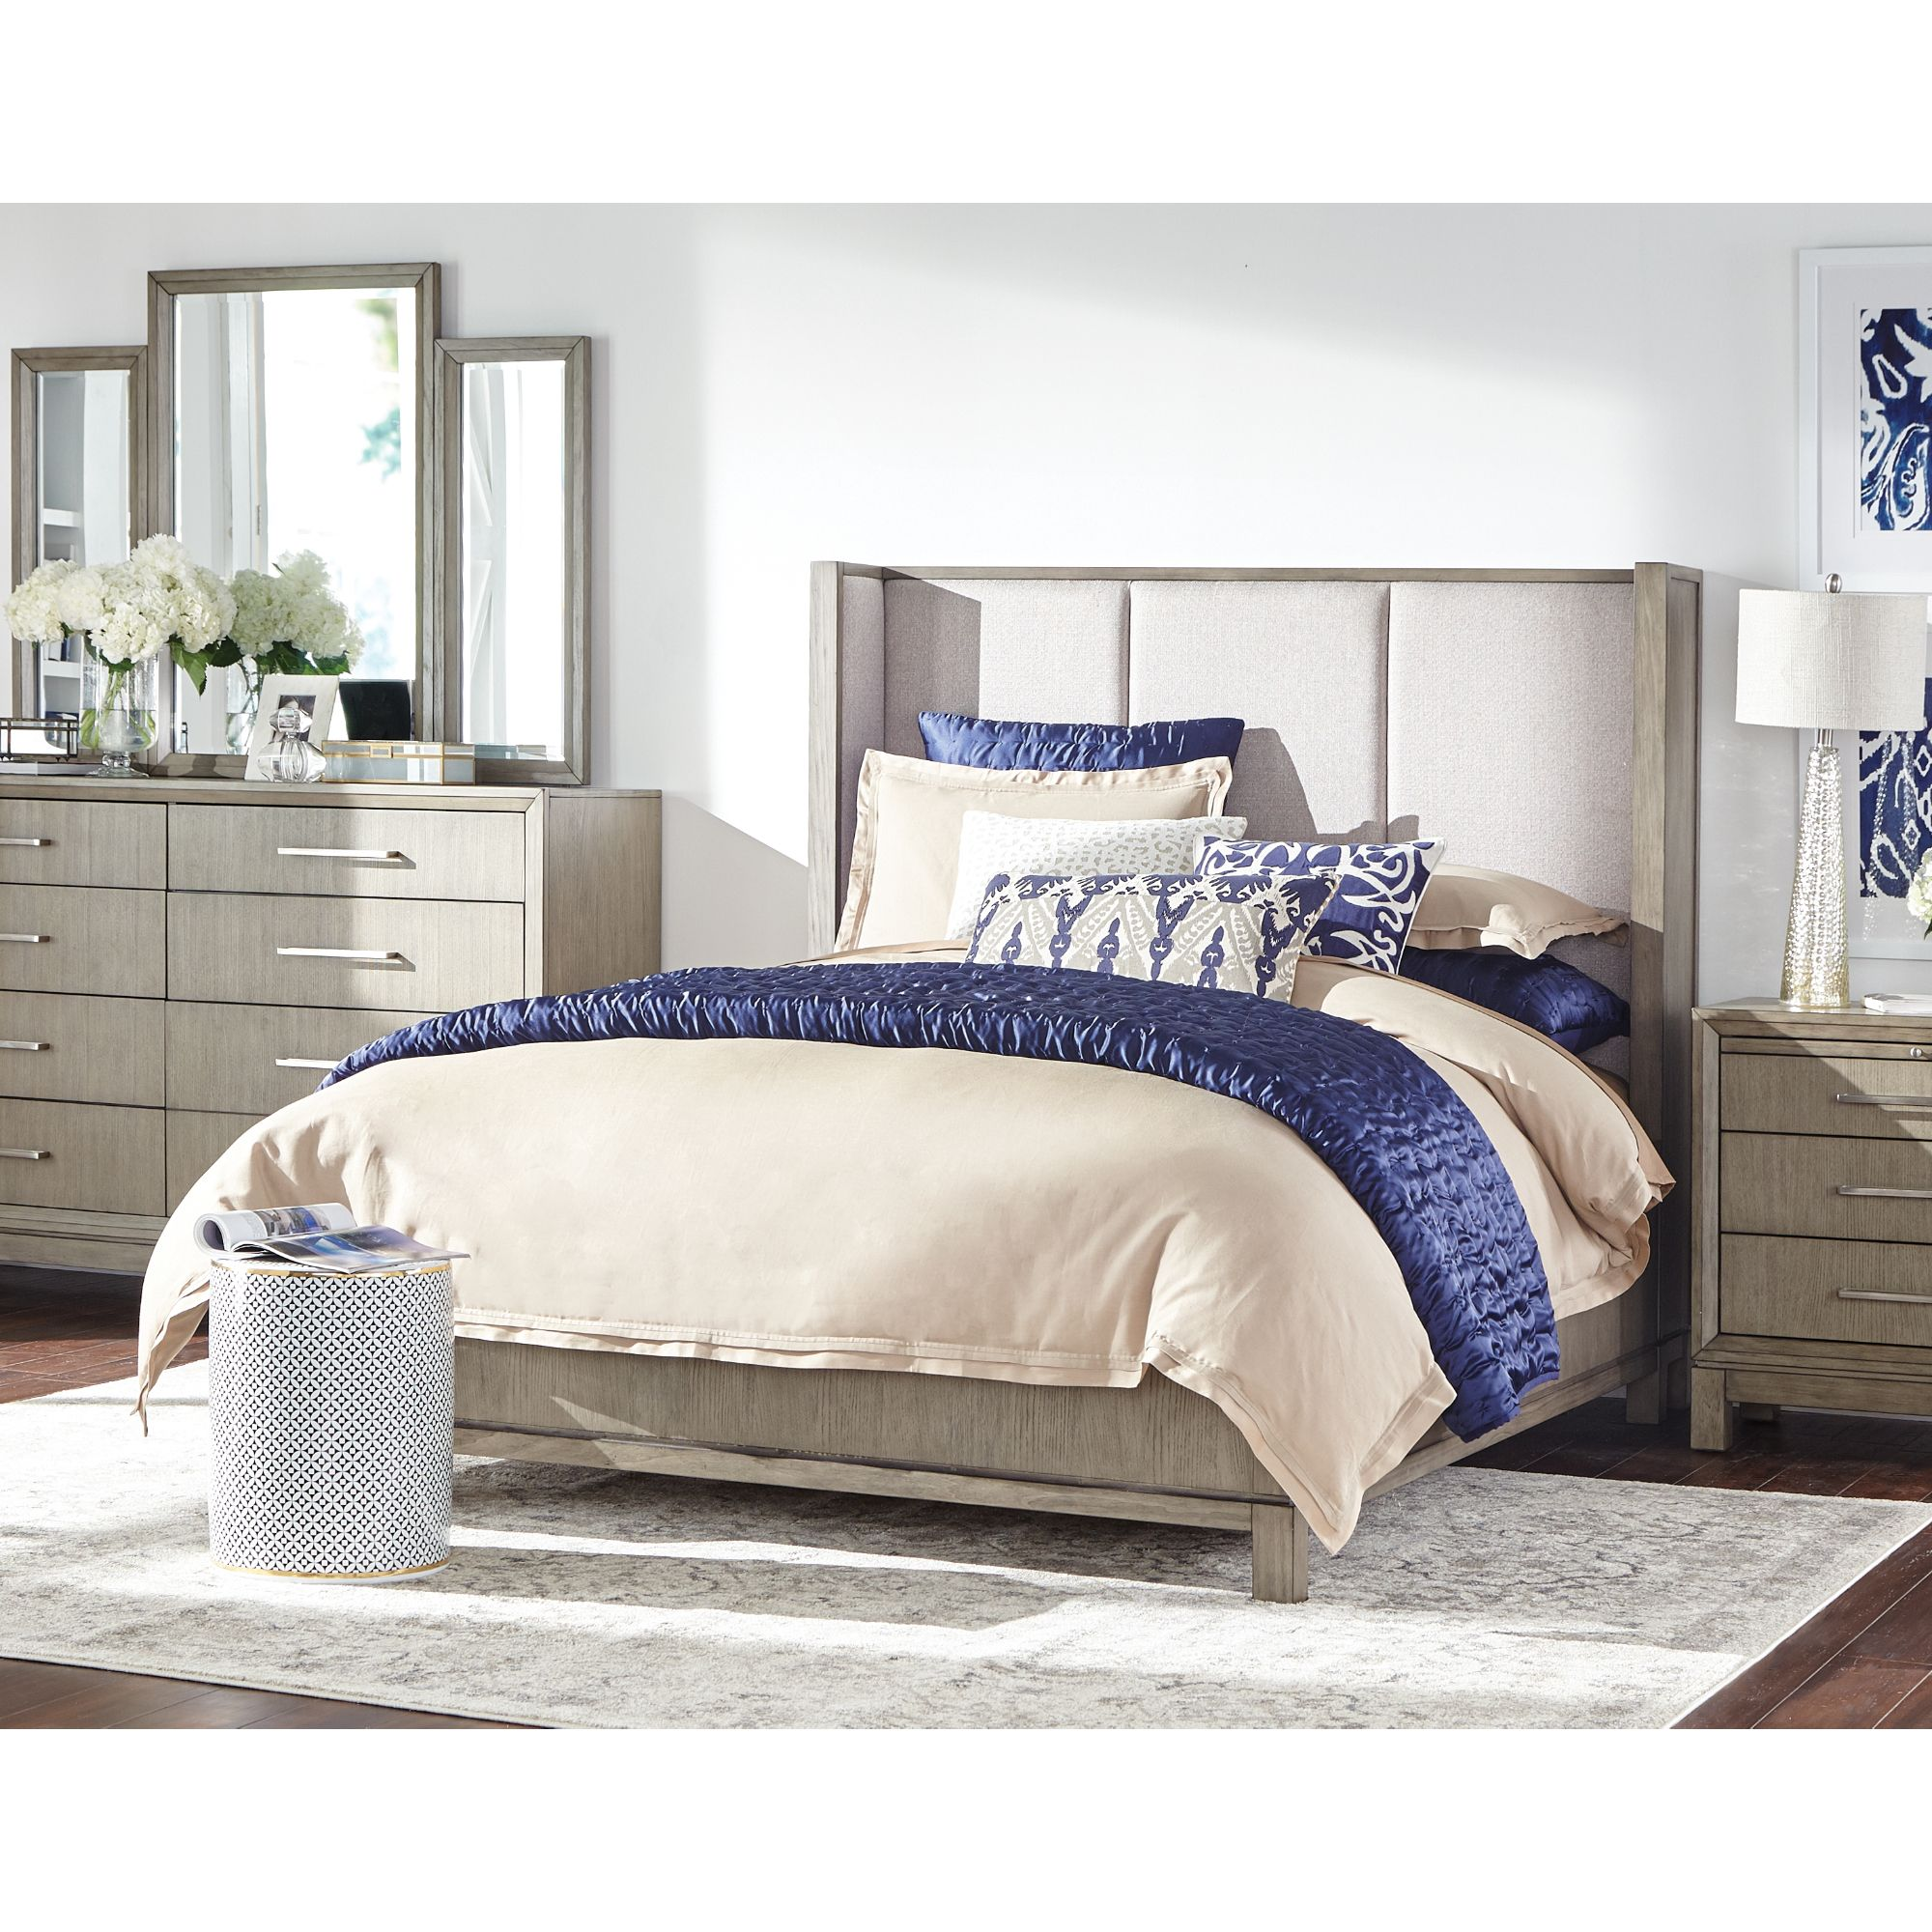 Bring a laidback romantic elegance to your bedroom when